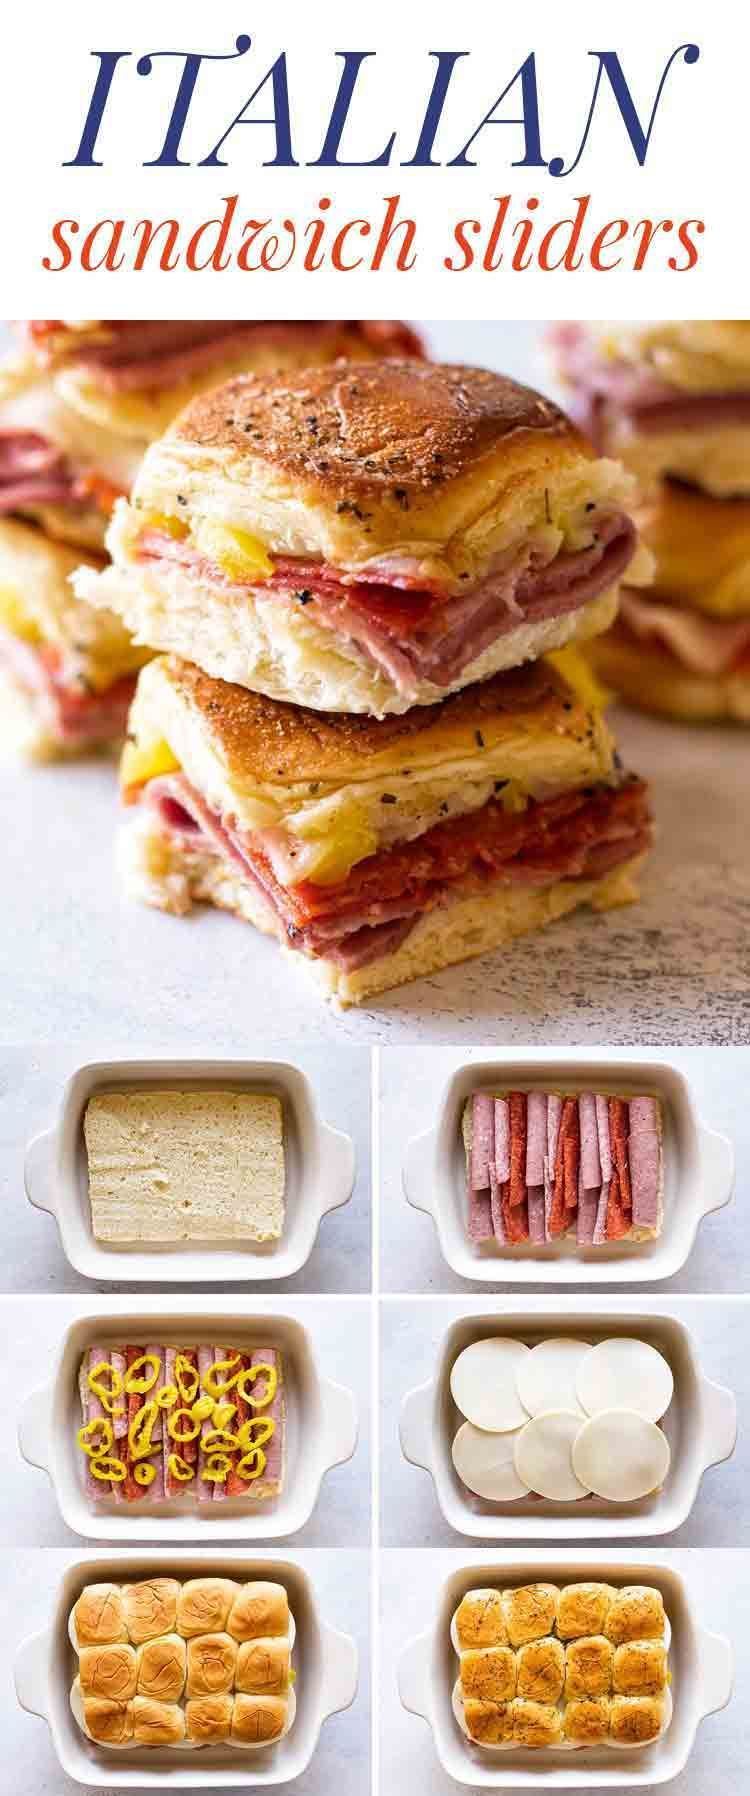 Italian Sandwich Sliders